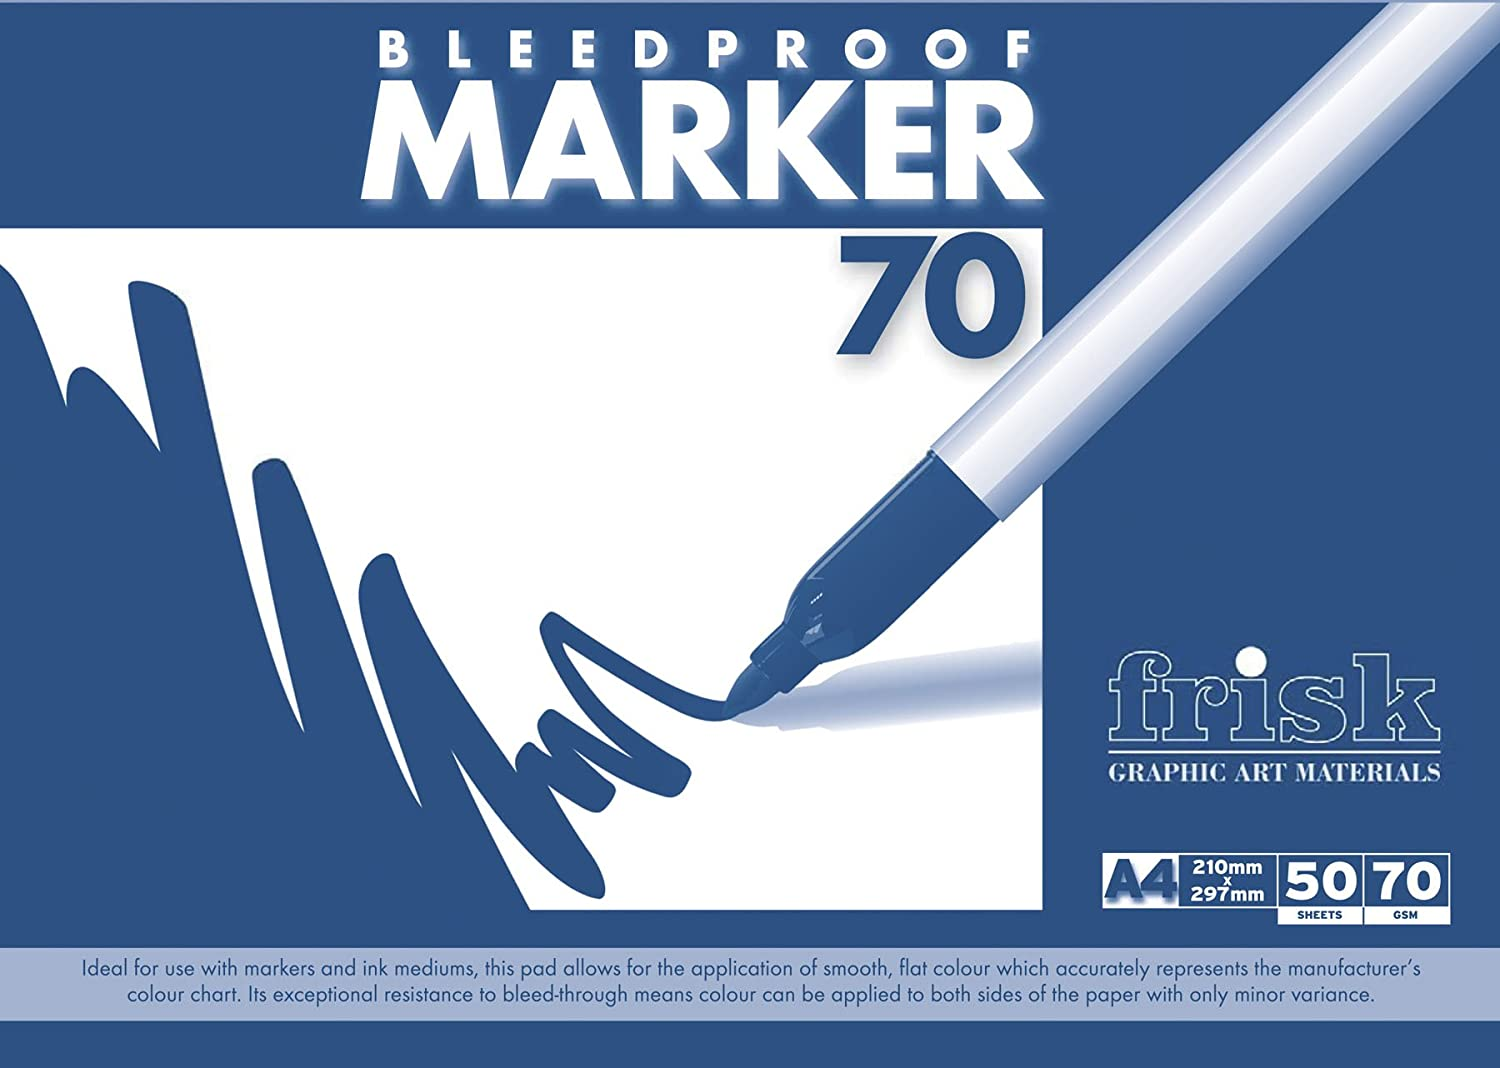 The Society for All Artists Frisk - Fogli Bleedproof Marker, 70 gm, formato A4, 50 fogli 23169704